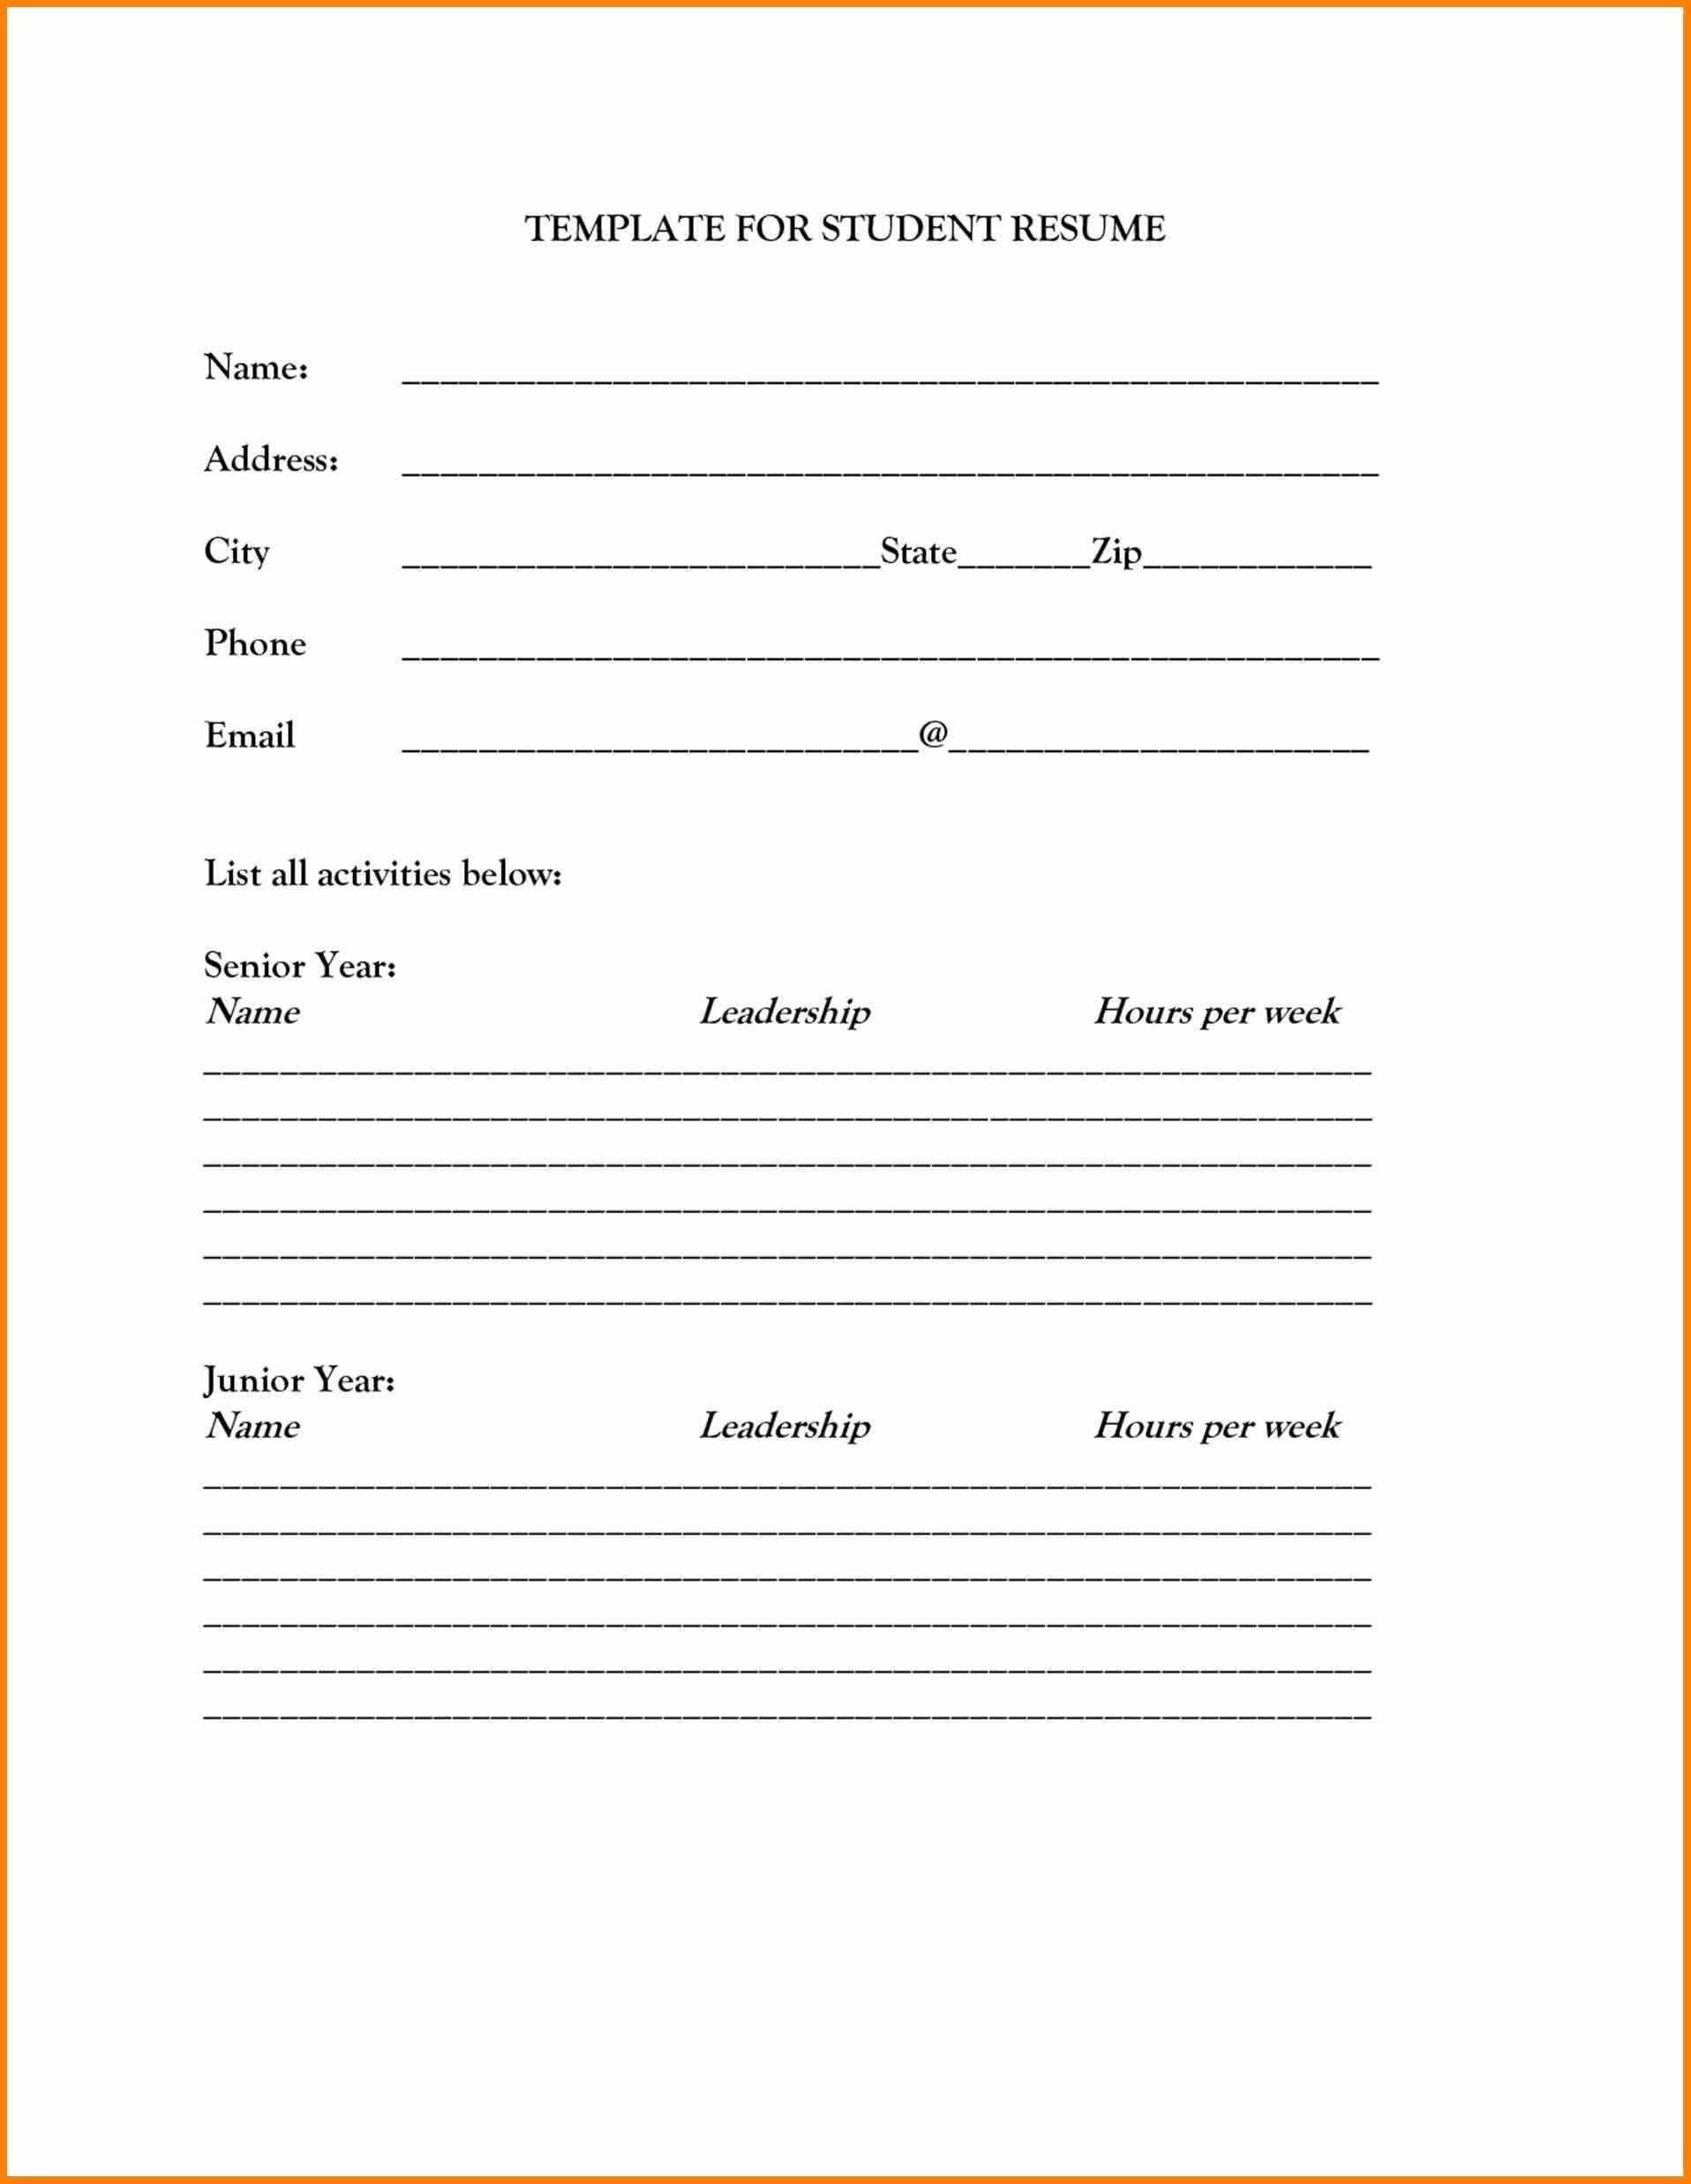 Free Printable Fill In The Blank Resume Templates Inspirationa - Free Printable Fill In The Blank Resume Templates